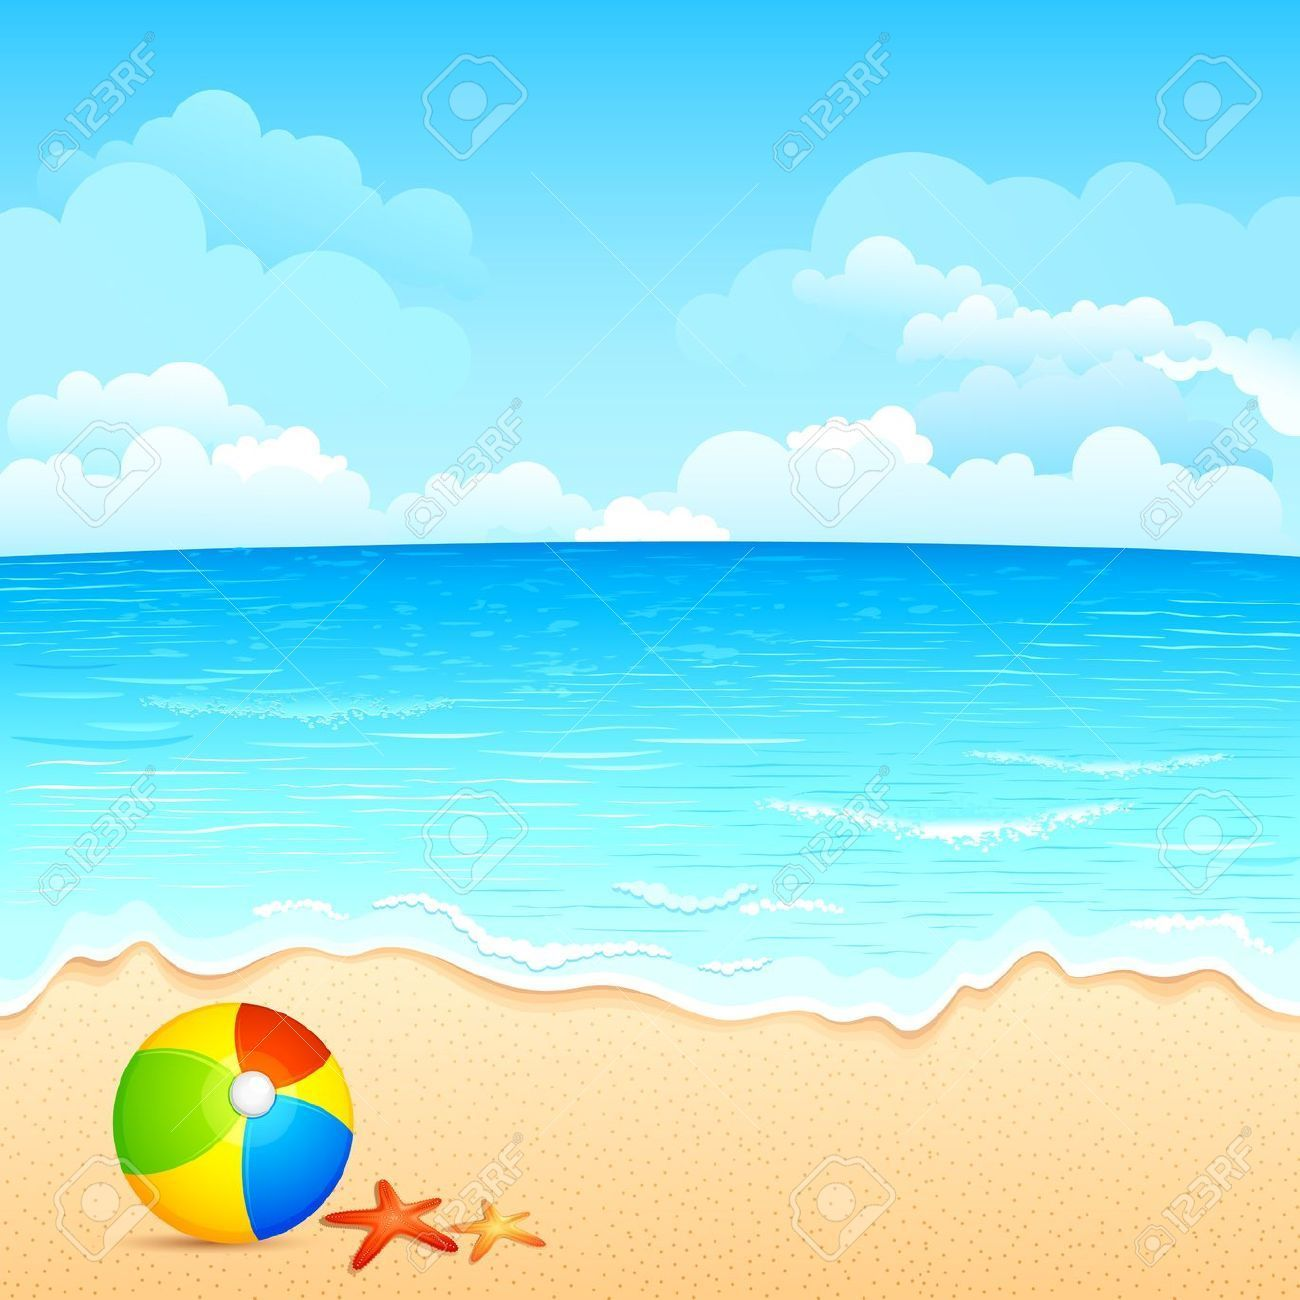 Image result for beach scene clipart #beachsceneclipart.